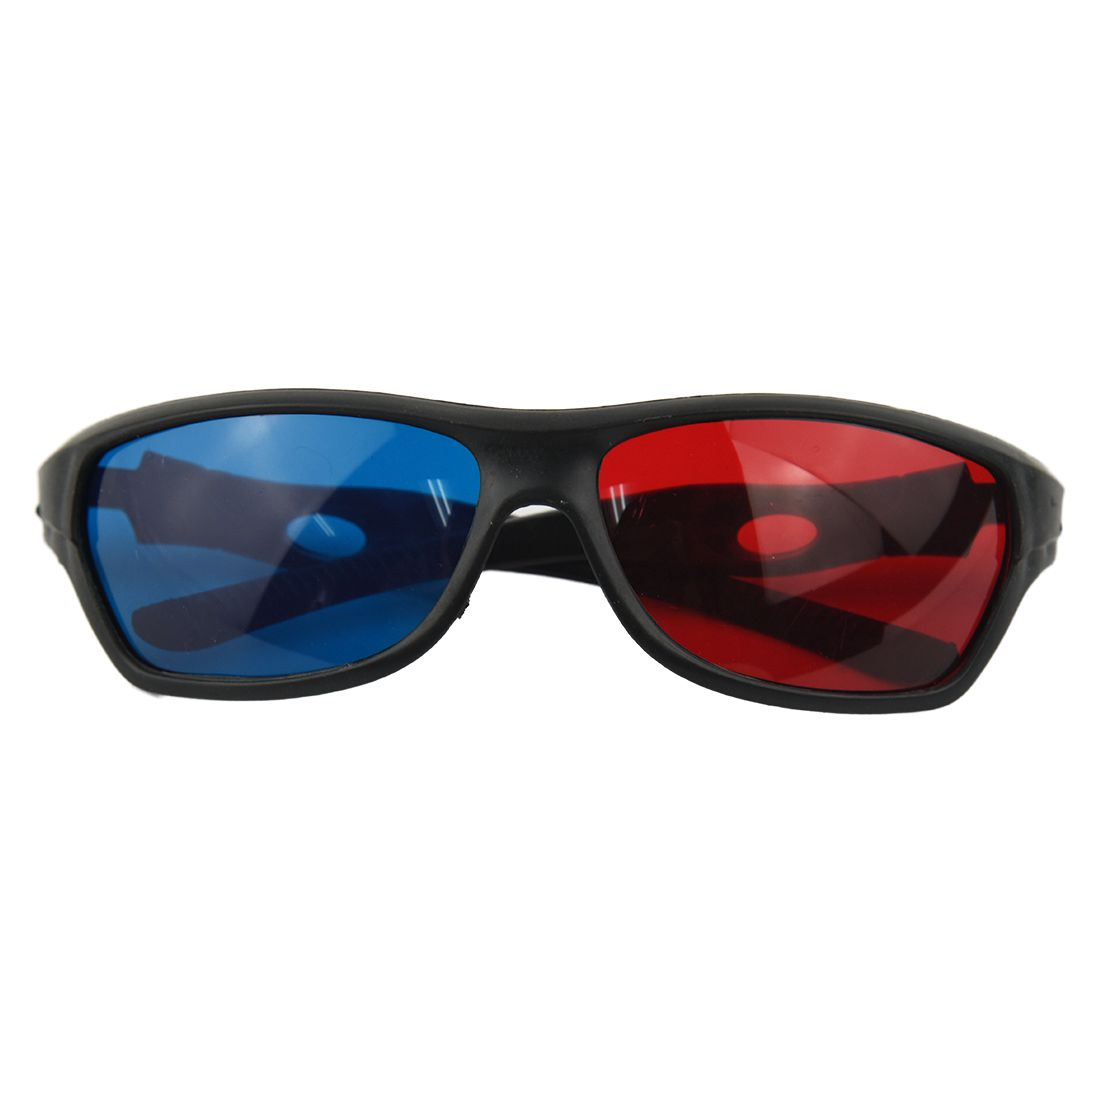 HOT-Fasdga 3D Plastic glasses/VR glasses Red-blue Anaglyph Simple style 3D Glasses 3D movie game DVD vision(Extra Upgrade Style) 3d очки oem 3d vr 5 5 3d 3d 3d vr glasses